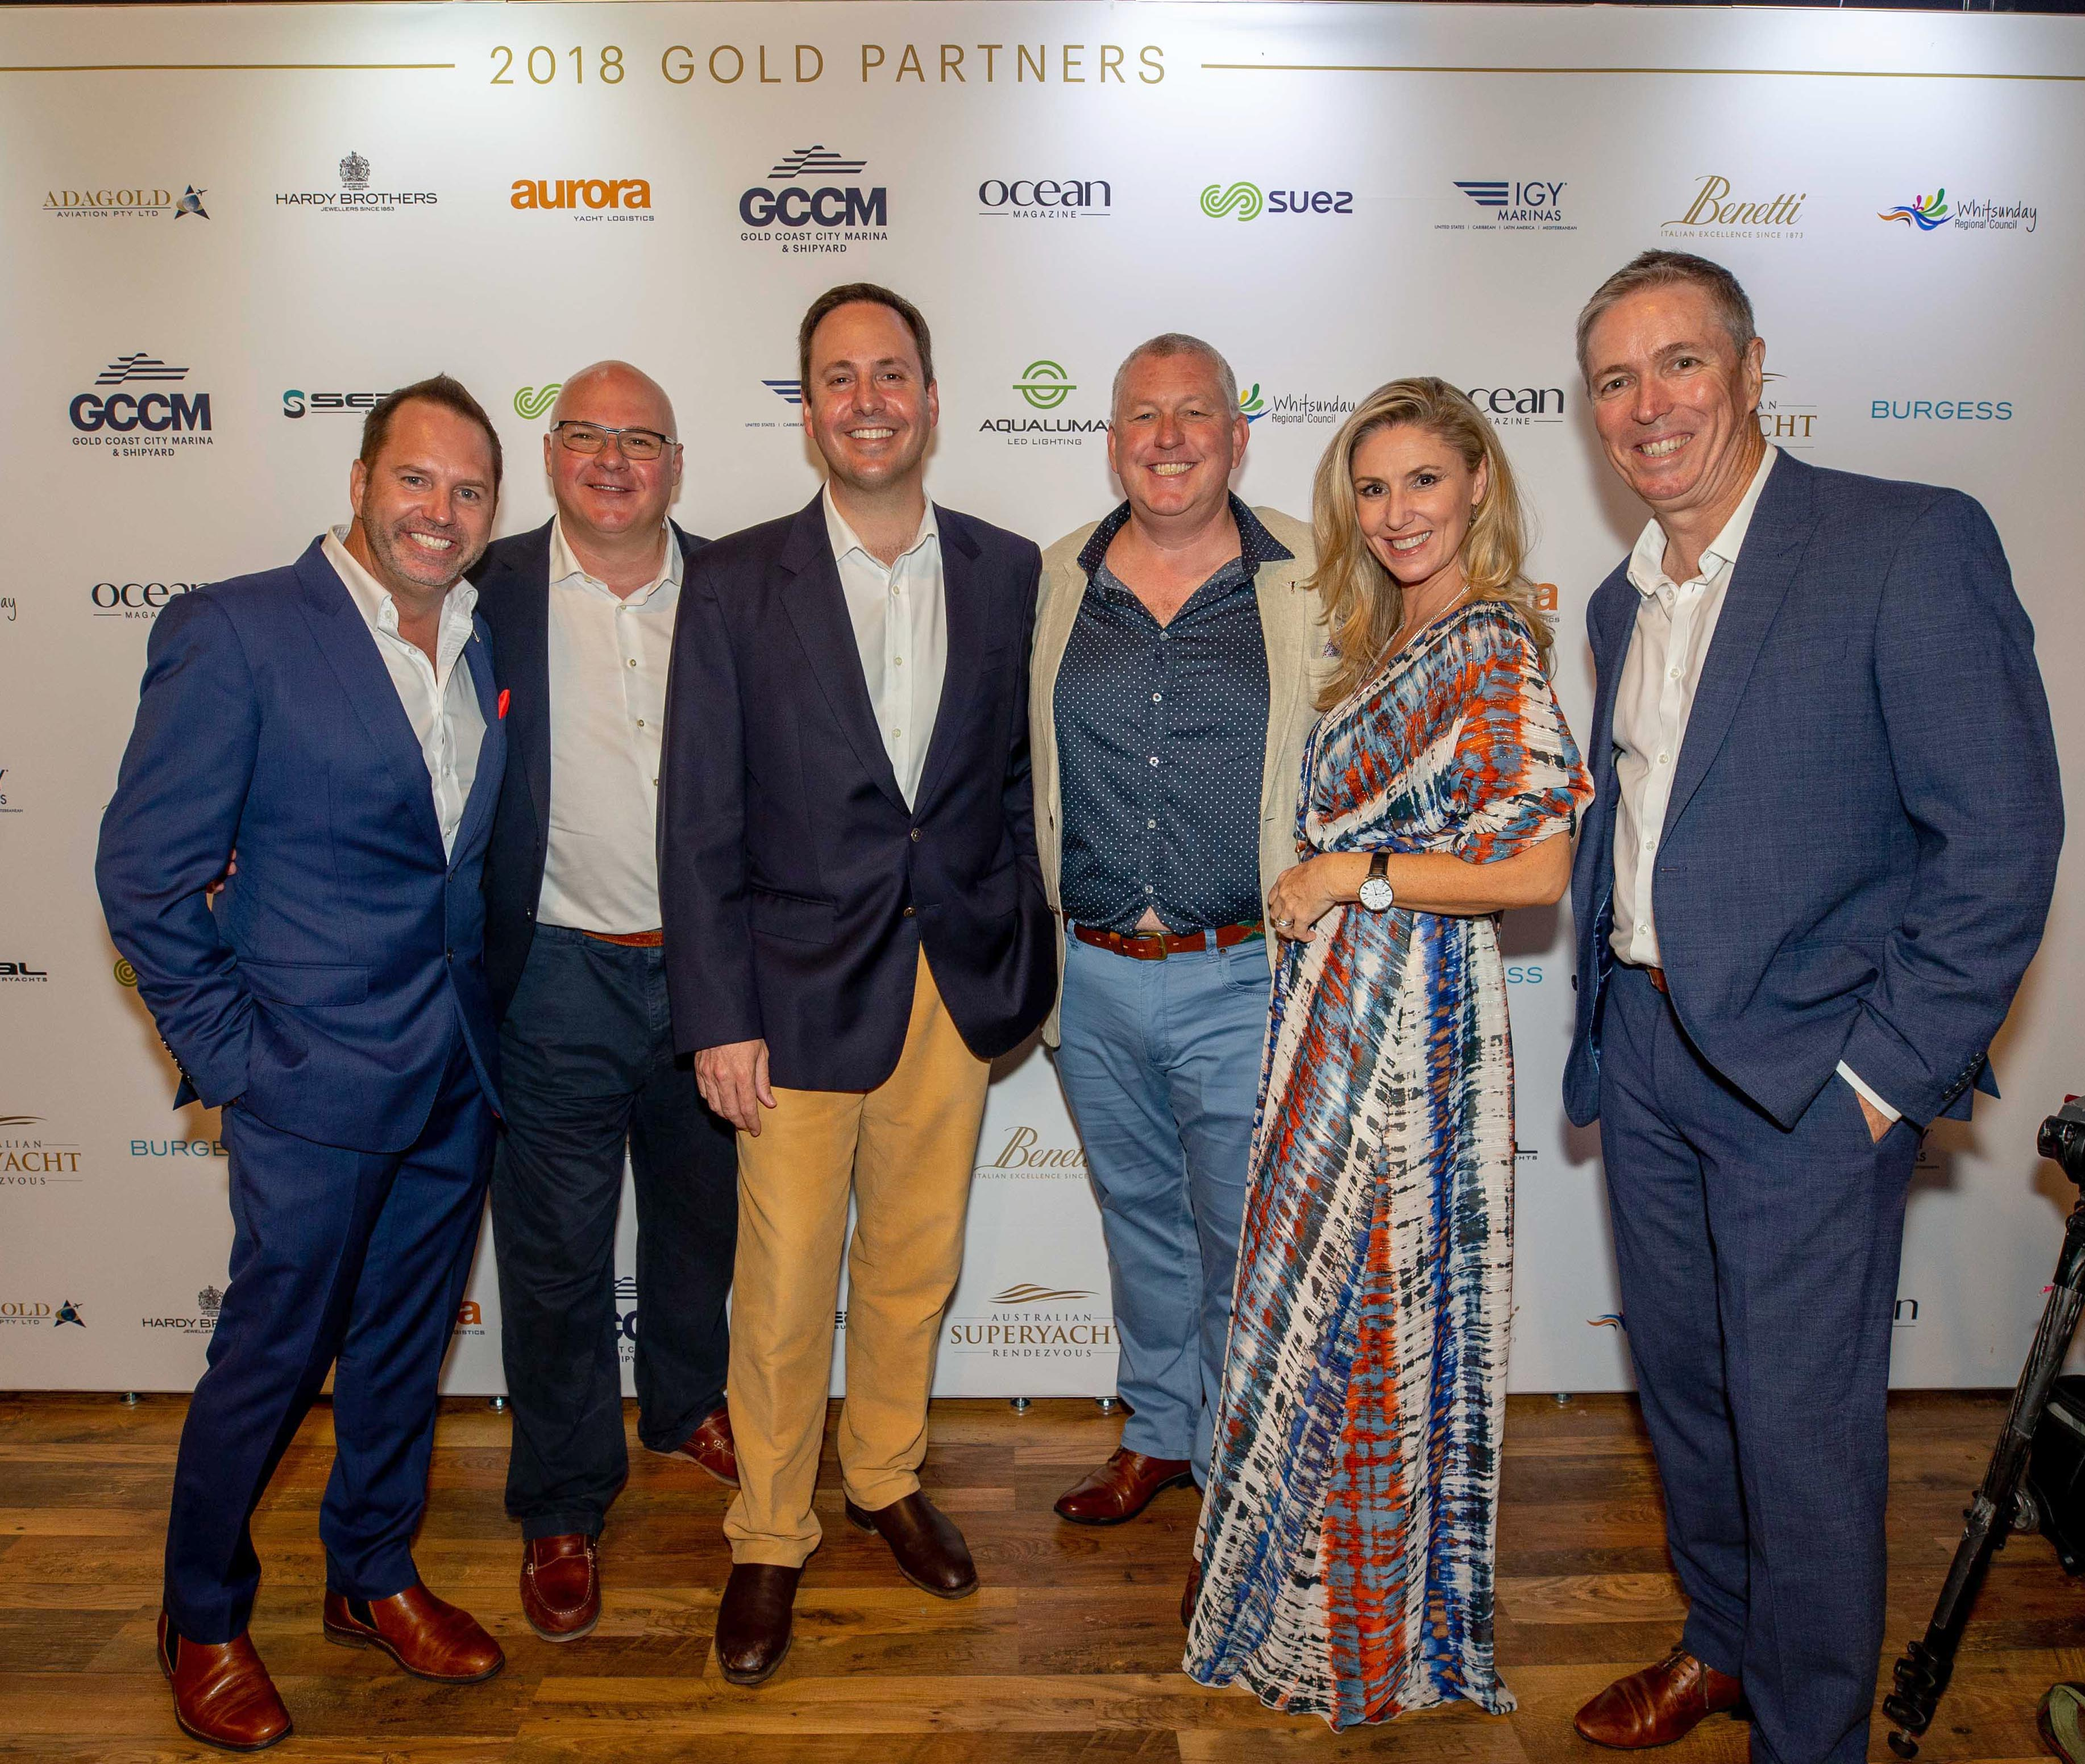 Sponsors of the Australian Superyacht Rendezvous 2018